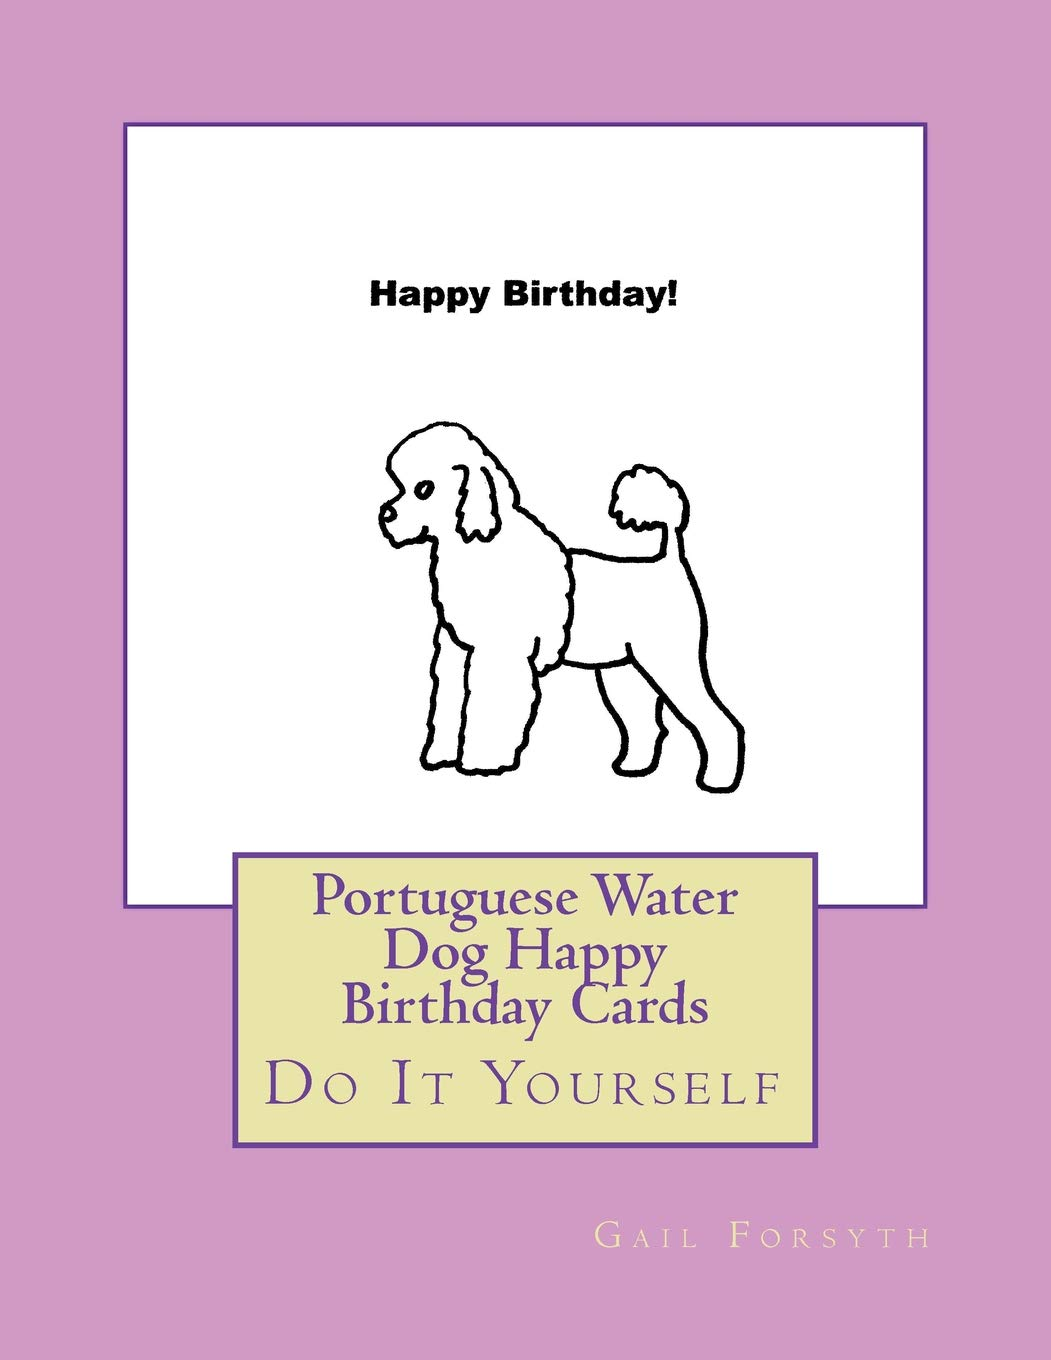 Portuguese Water Dog Happy Birthday Cards Do It Yourself Gail Forsyth 9781723182716 Amazon Books